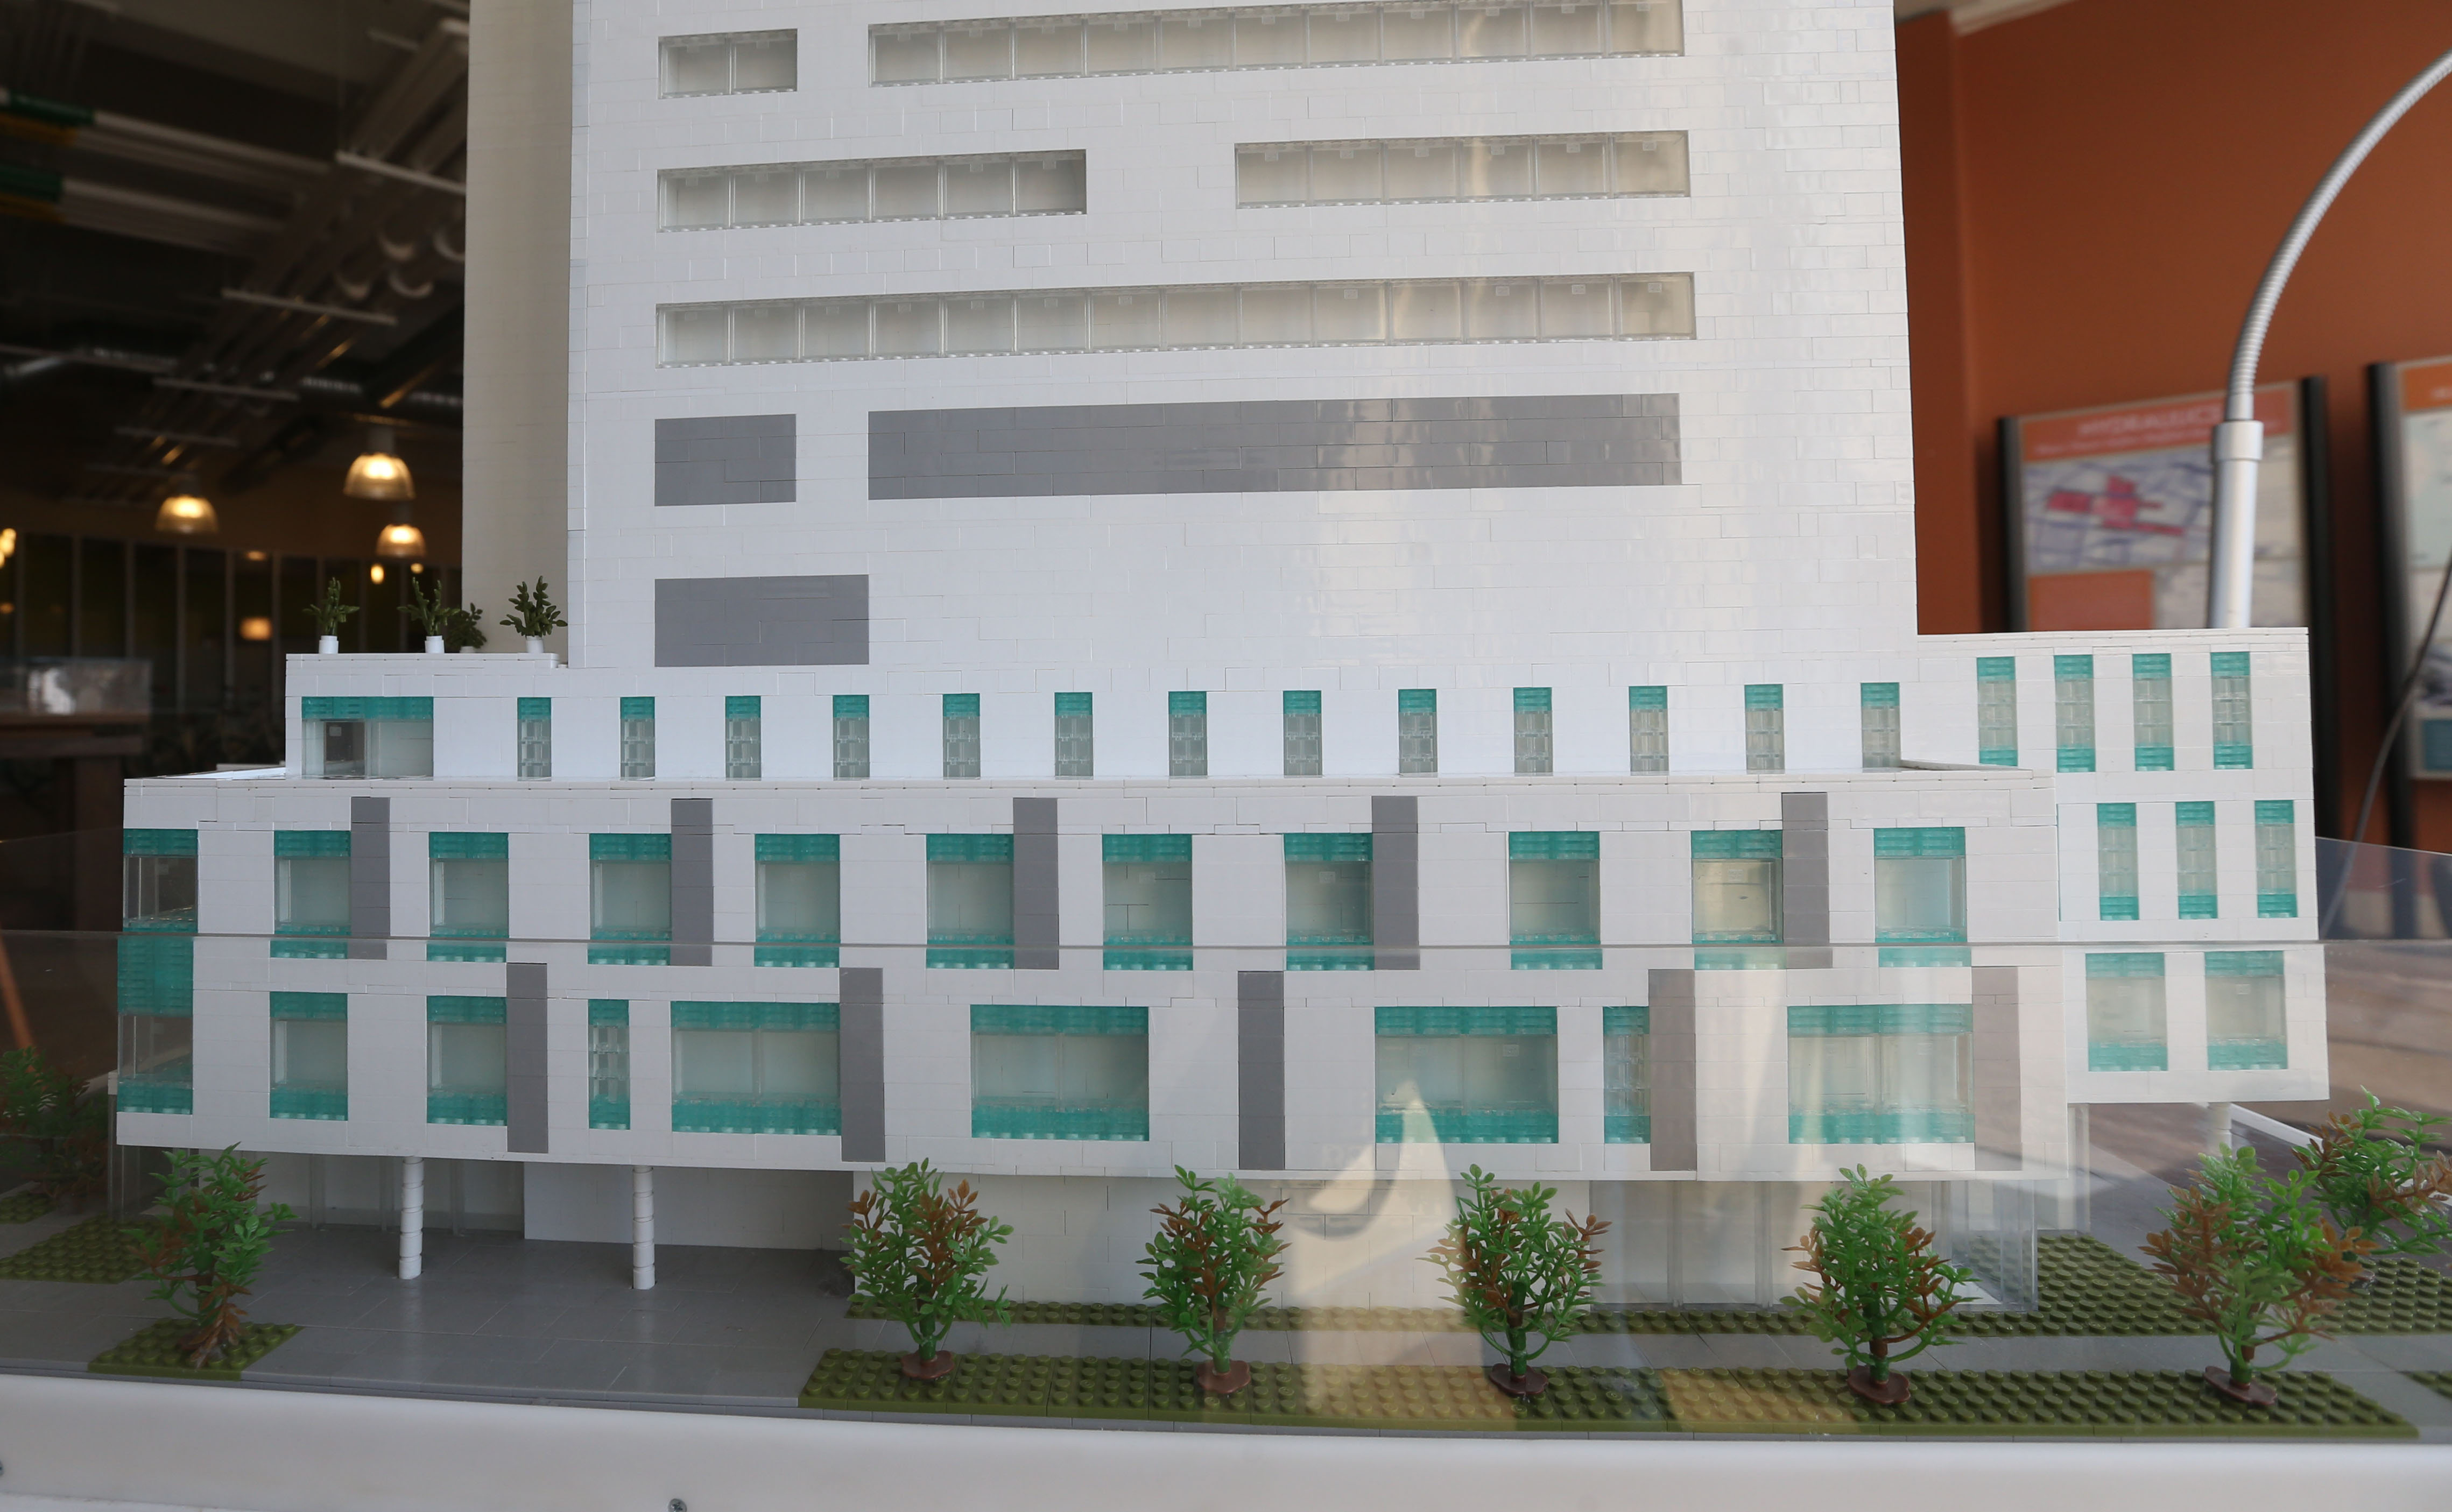 Employees from Fisher-Price East Aurora and MEGA Brands Montreal offices donated time to create a replica of the New John R. Oishei Children's Hospital in anticipation of the fall 2017 opening.  The model on display at the Larking Building on Exchange St. is made of 41,250 Mega Bloks. (Sharon Cantillon/Buffalo News)